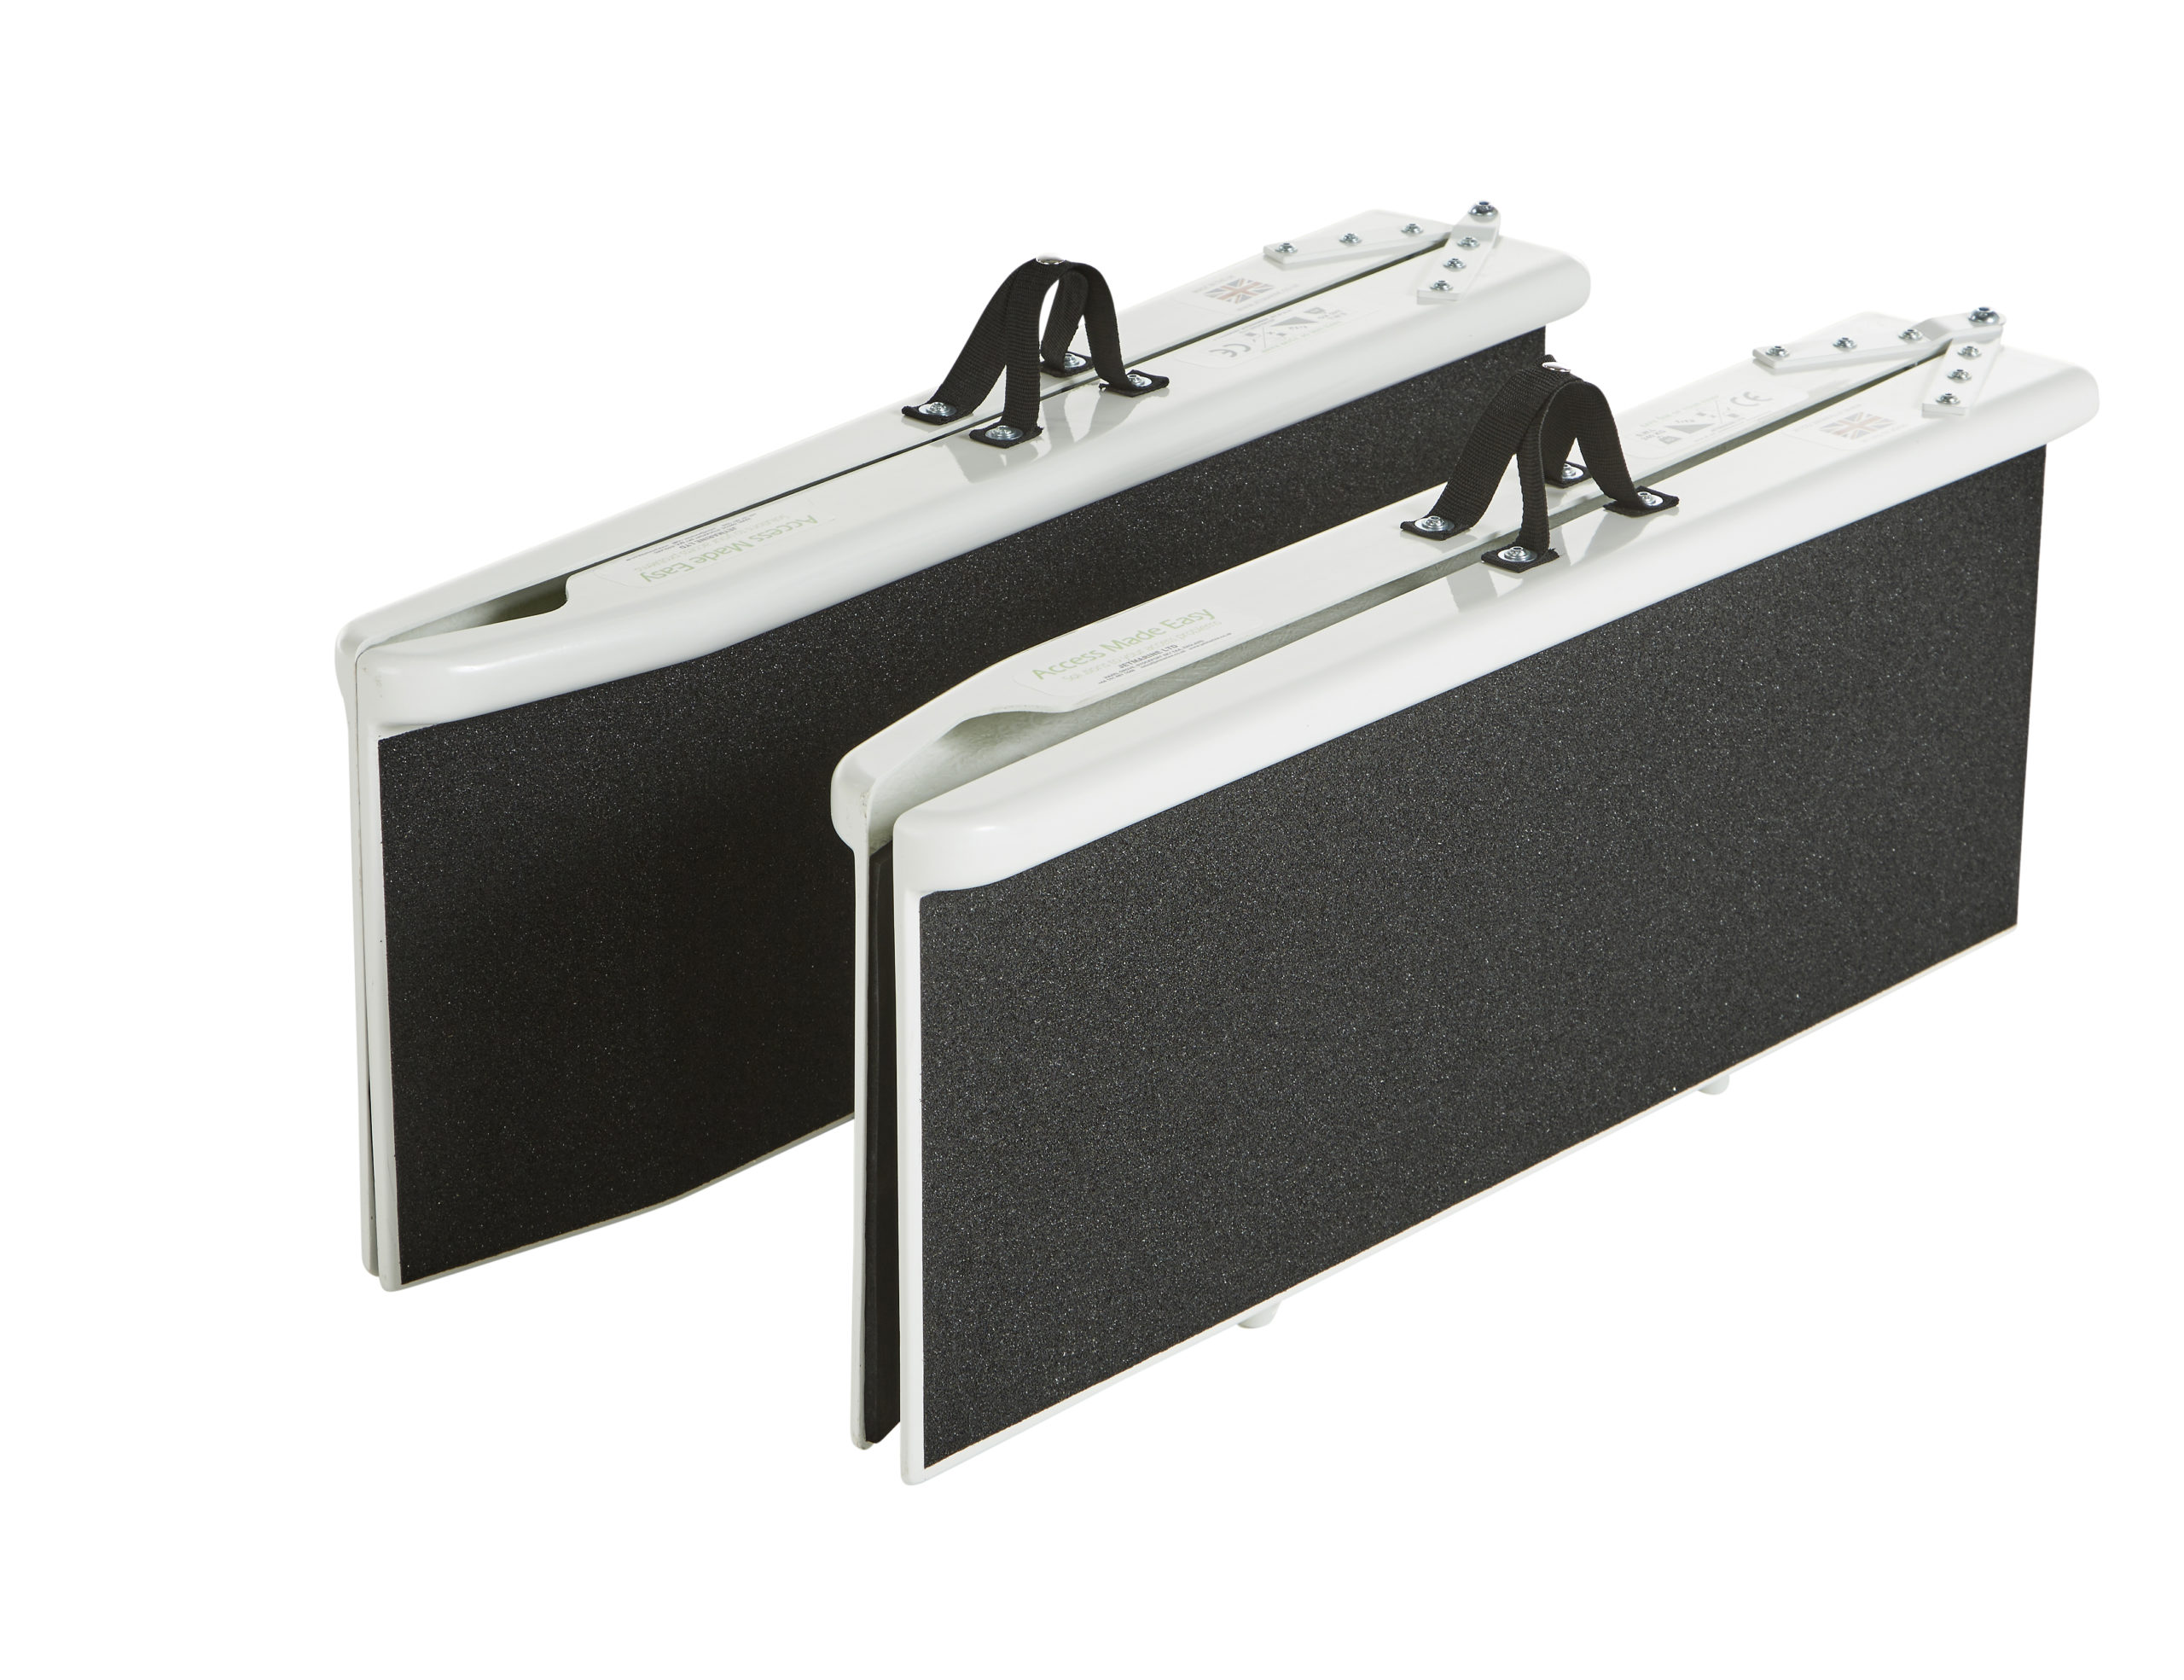 Folded split scooter ramp with white background